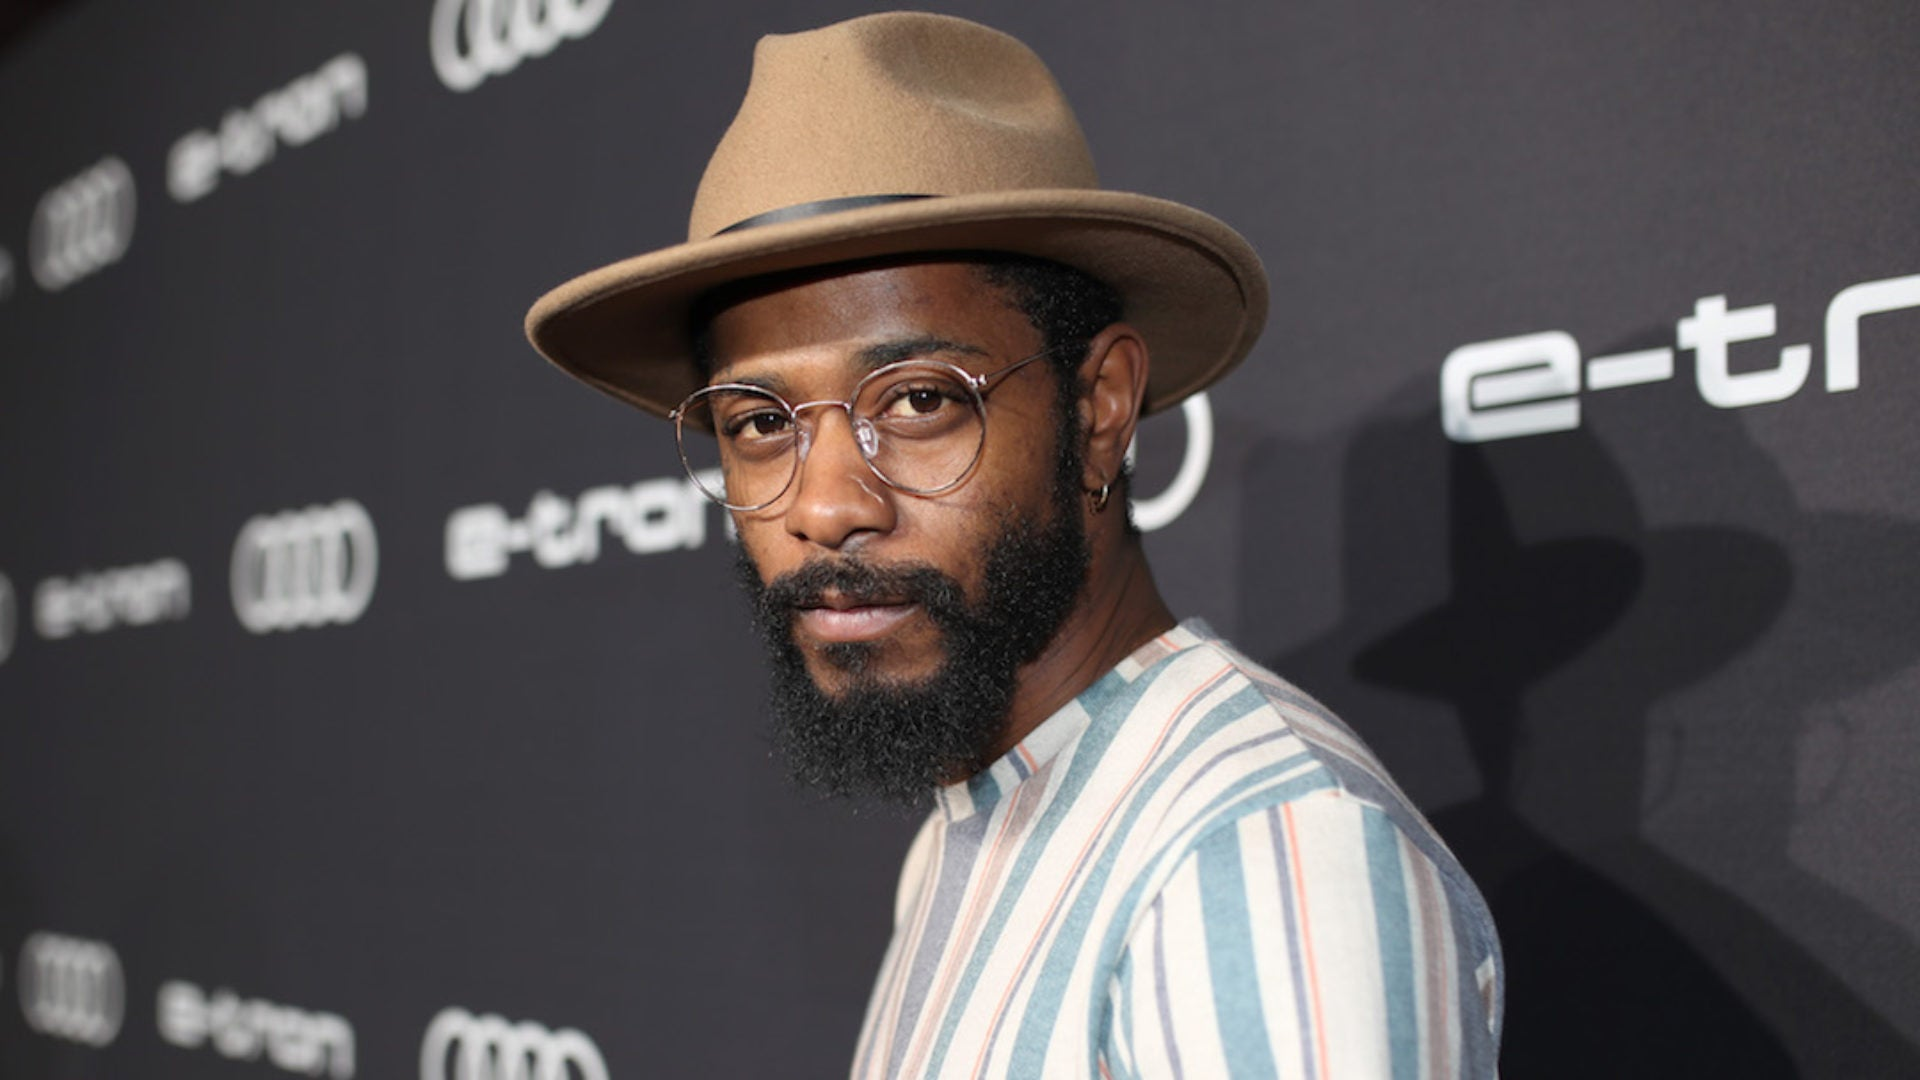 'Knives Out' Star Lakeith Stanfield Talks Being The Only Black Actor On Set